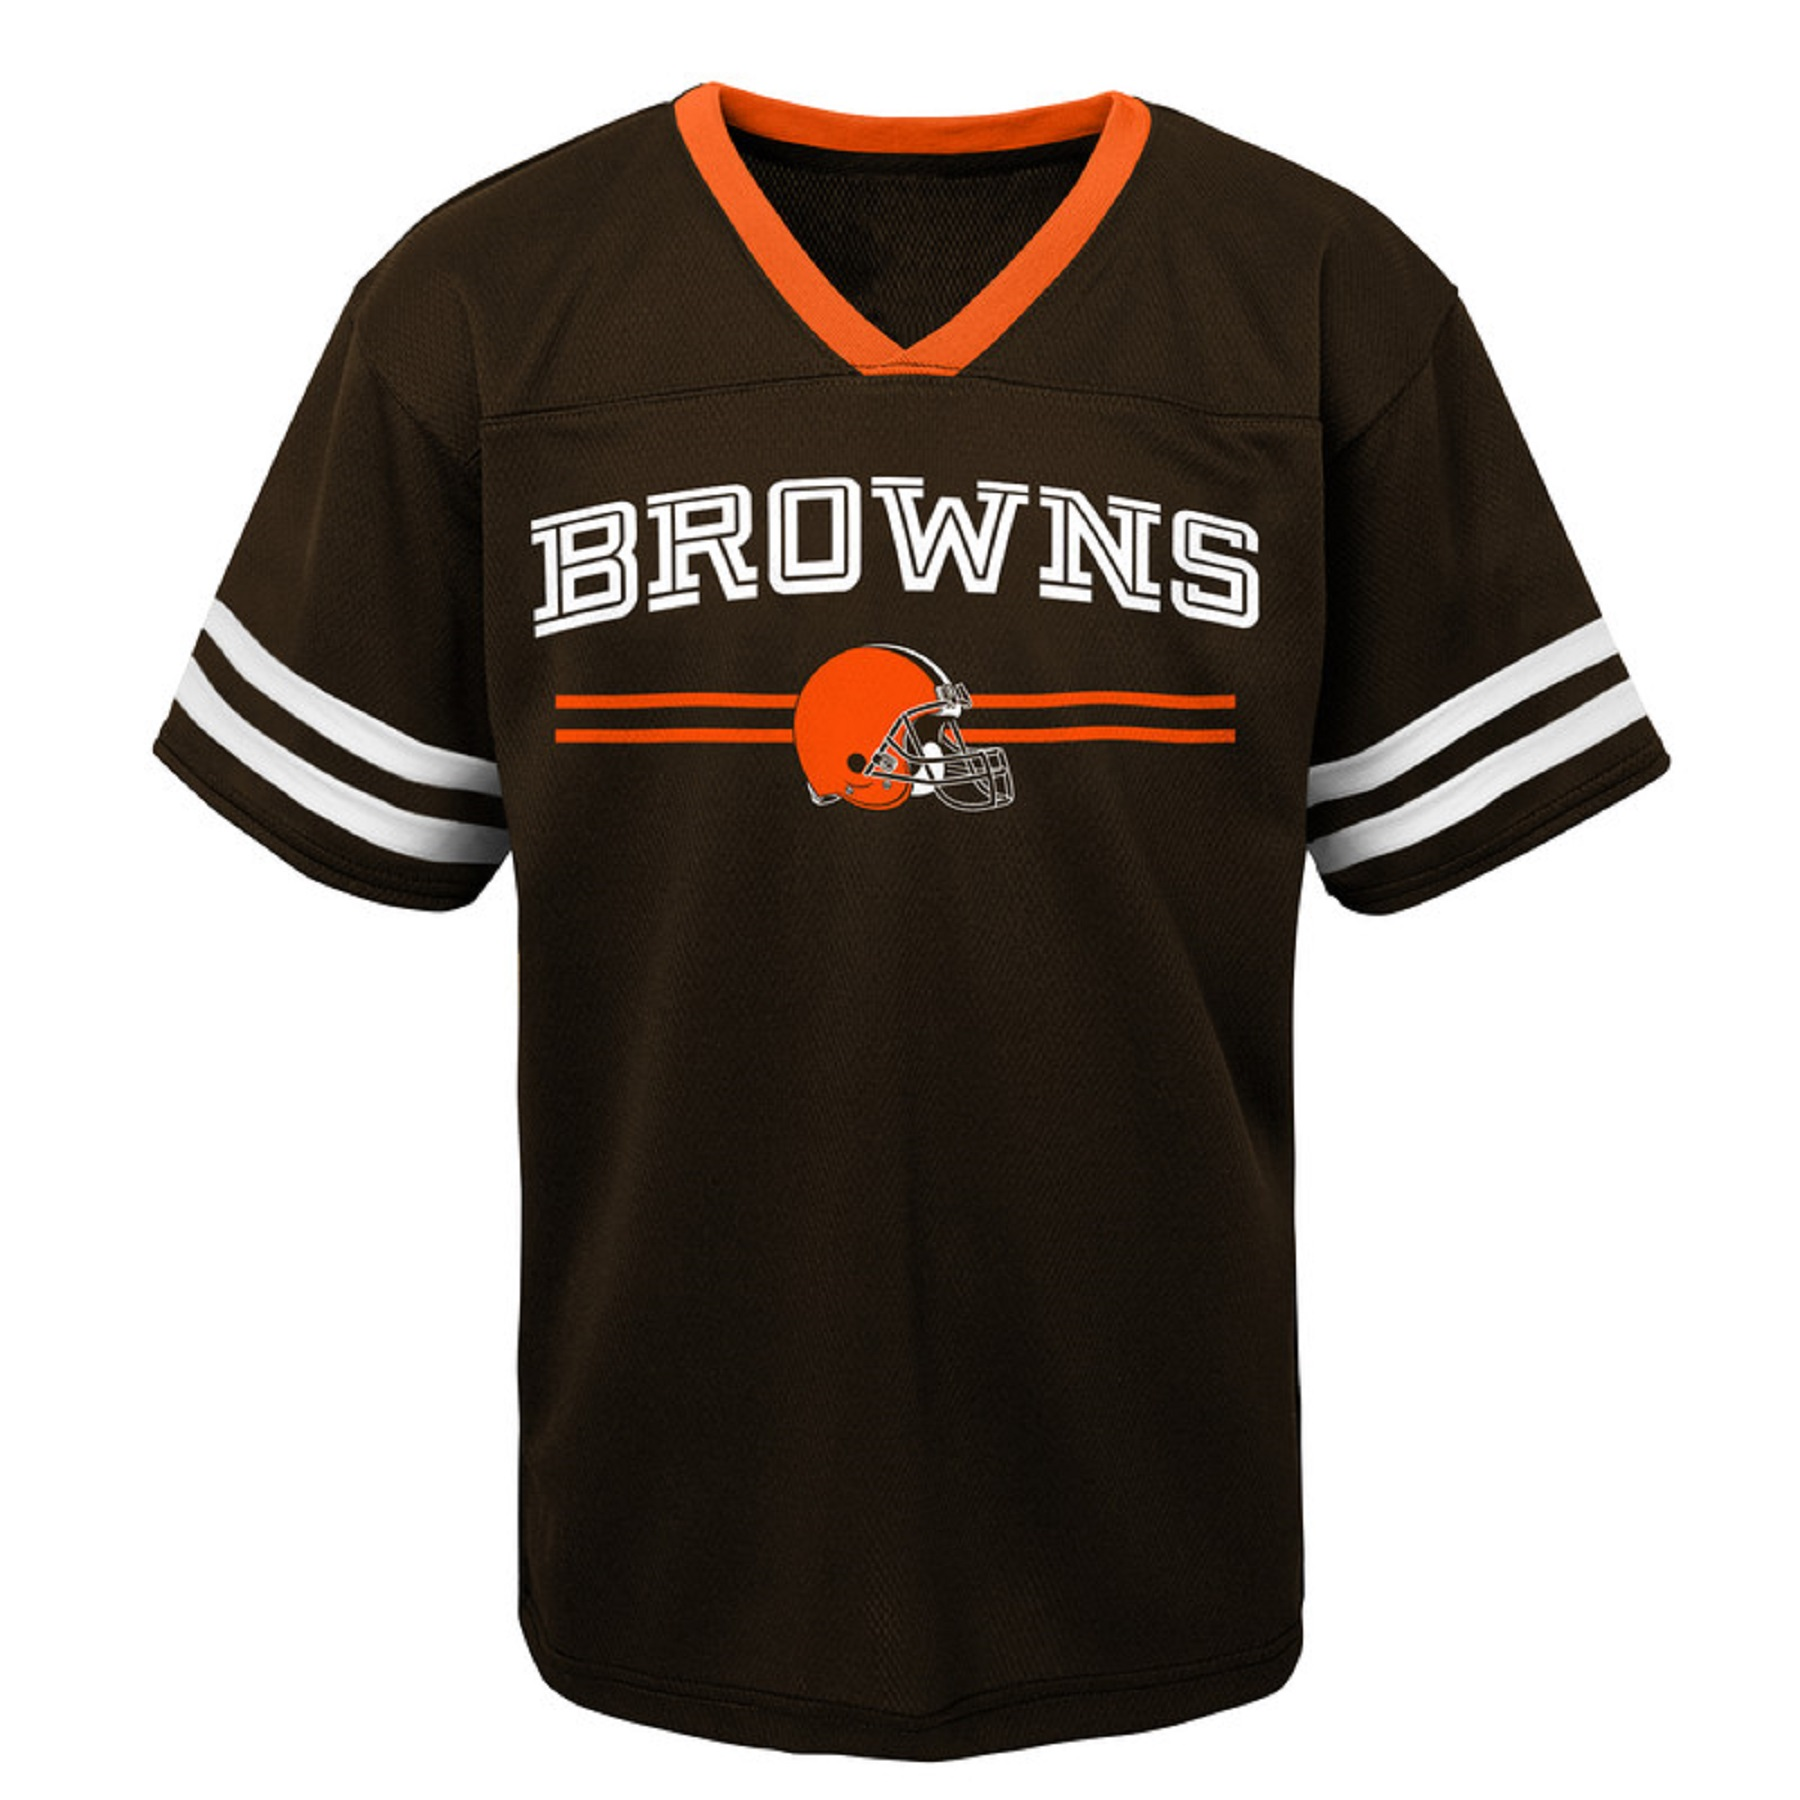 Youth Brown Cleveland Browns Mesh V-Neck T-Shirt